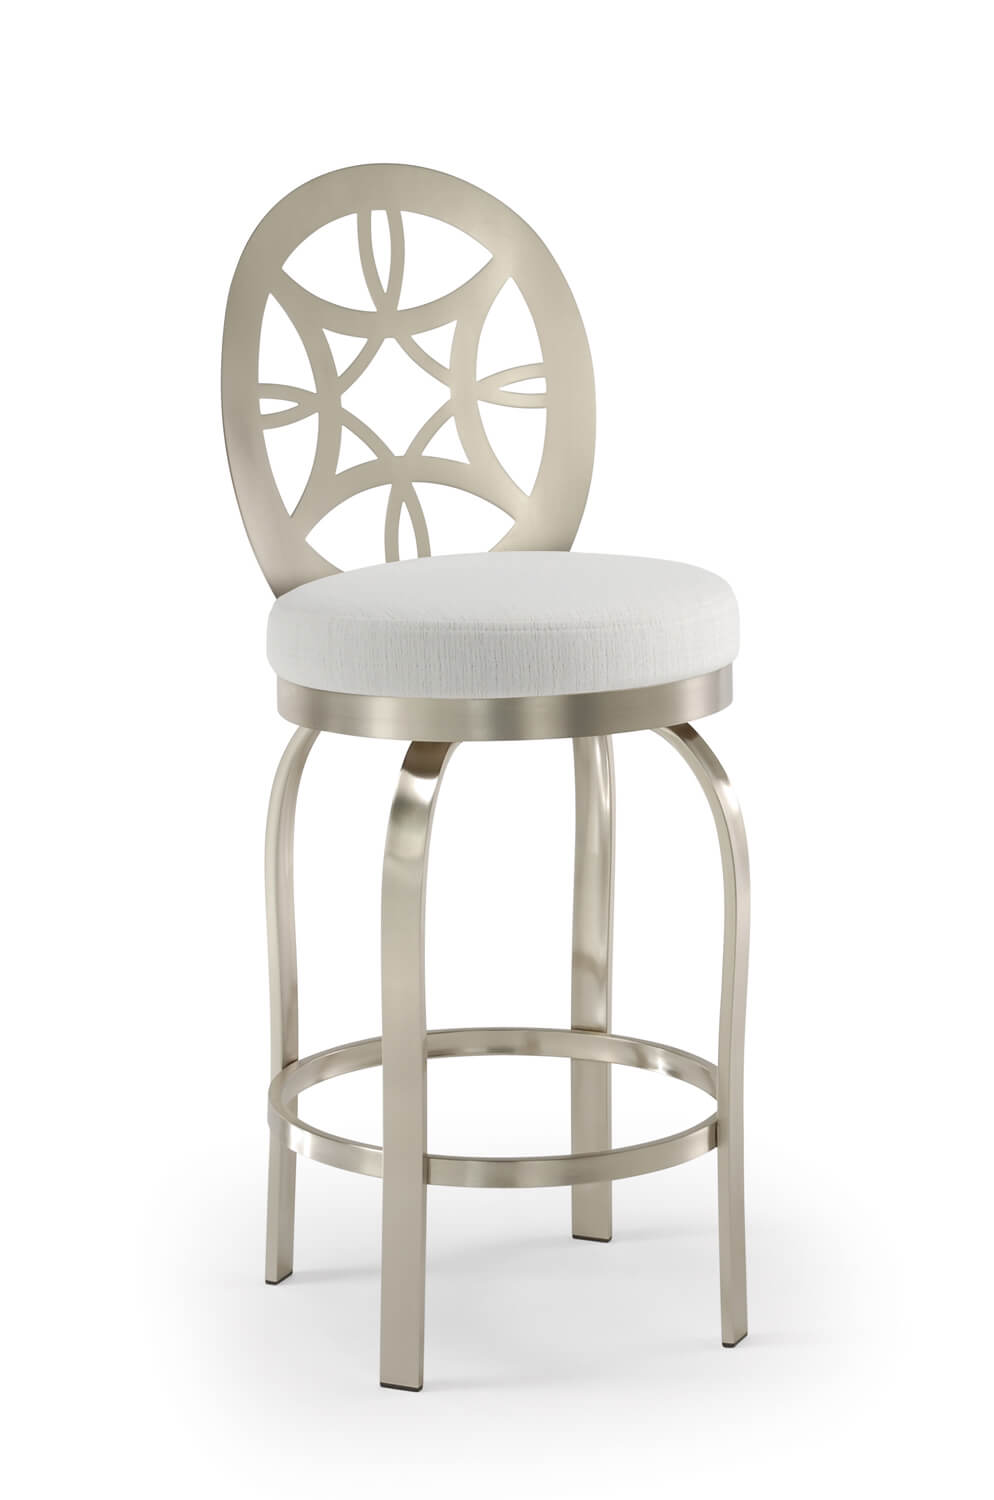 Buy Trica S Provence Brushed Stainless Steel Swivel Bar Stool